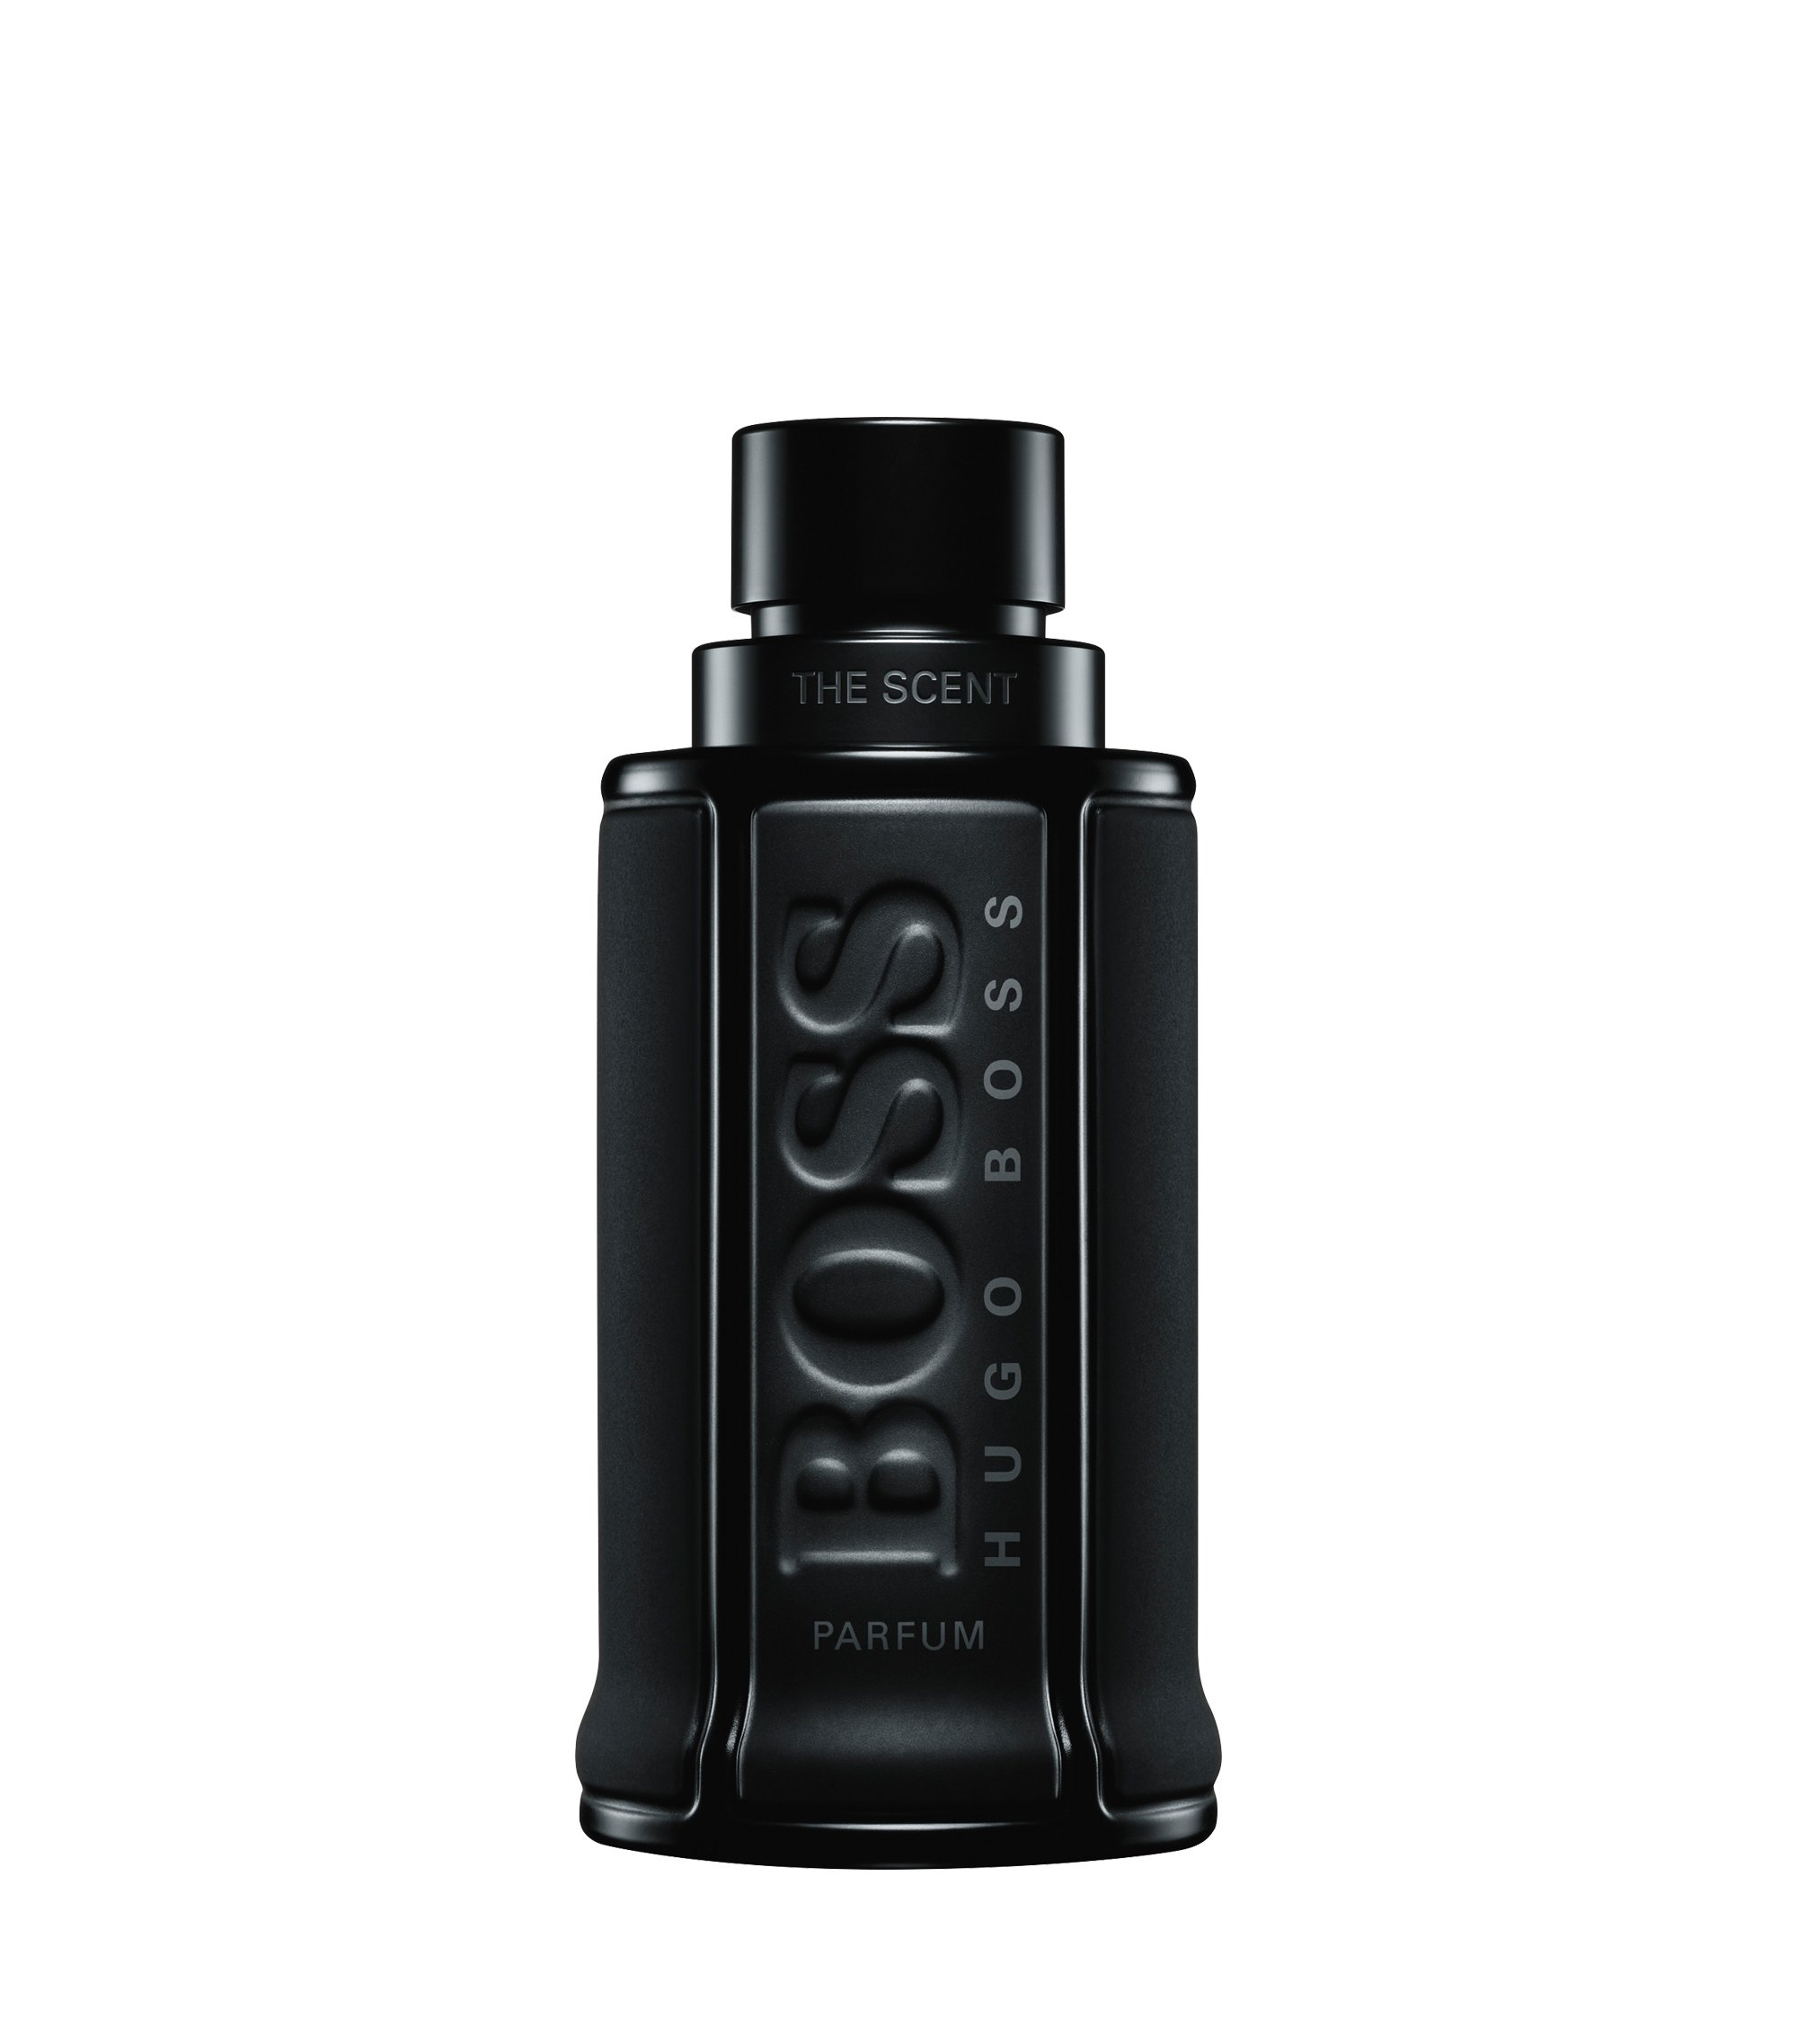 BOSS The Scent For Him eau de parfum 100ml, Assorted-Pre-Pack